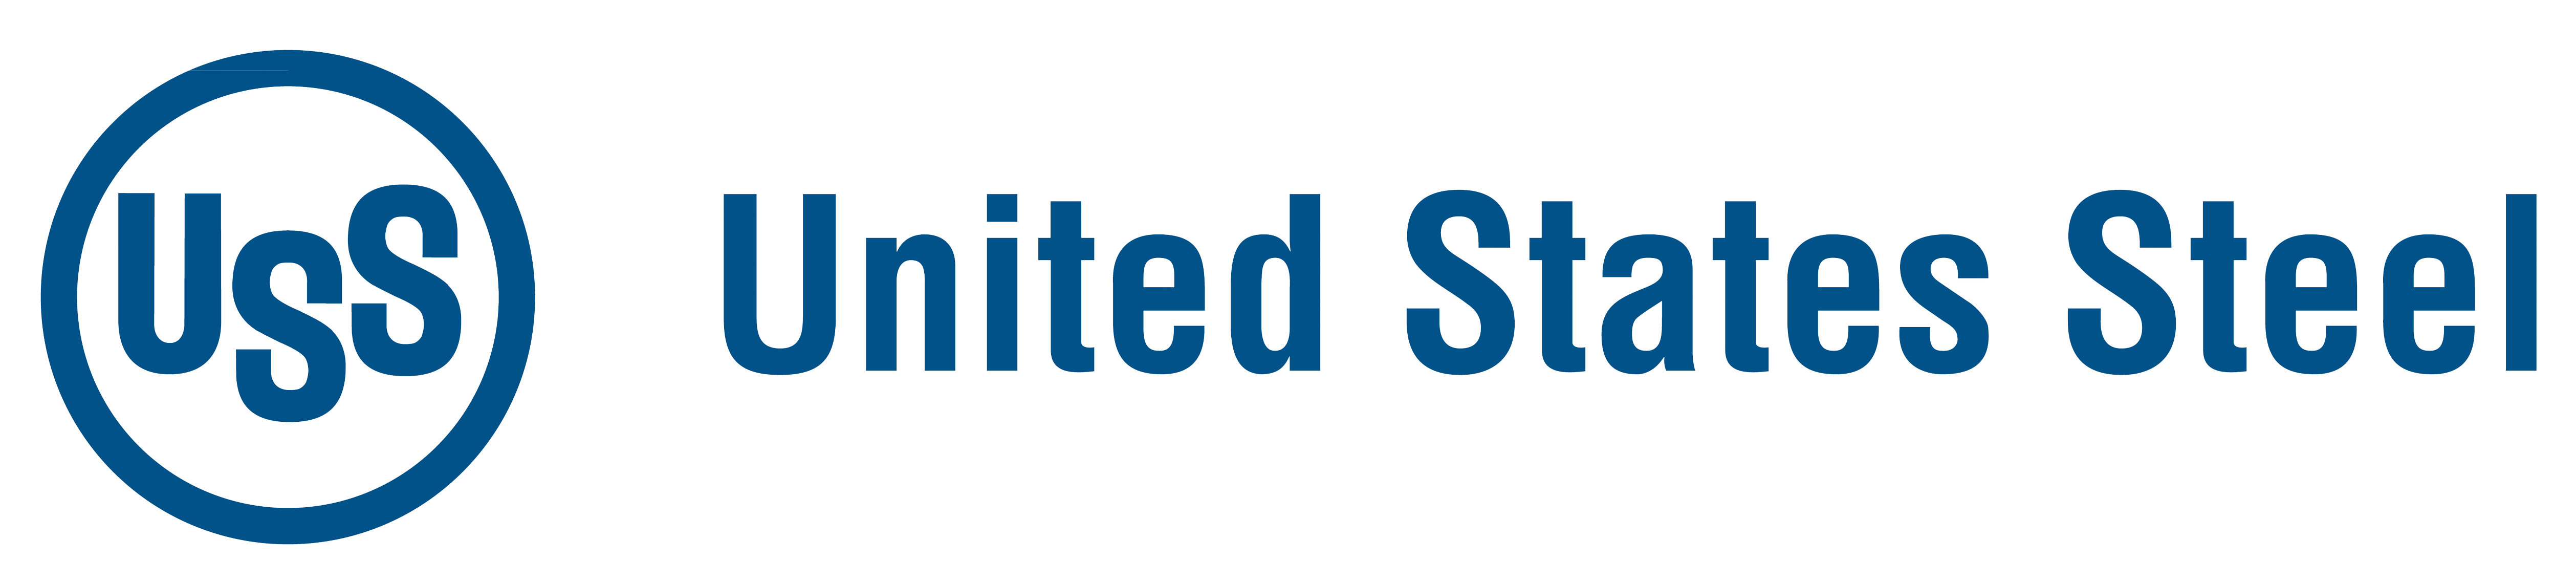 U.S. Steel: 2020 Could Be Good, But Risks Remain Elevated - United States Steel Corporation (NYSE:X) | Seeking Alpha